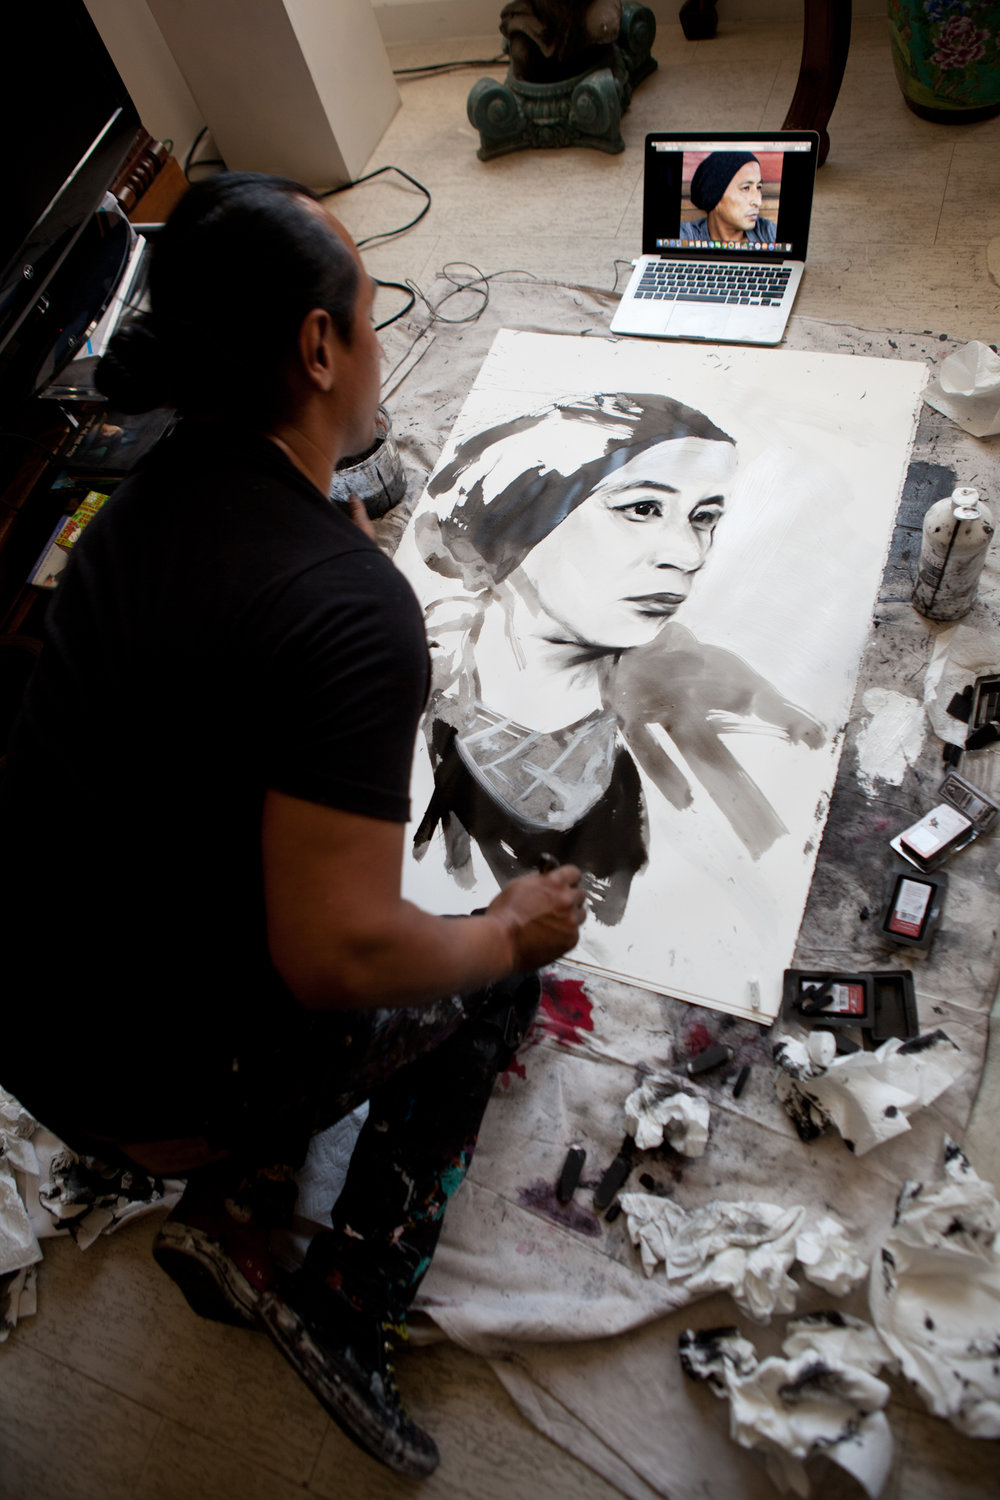 Robert Vargas draws Daewon Song for Skateboarding Hall of Fame induction ceremony